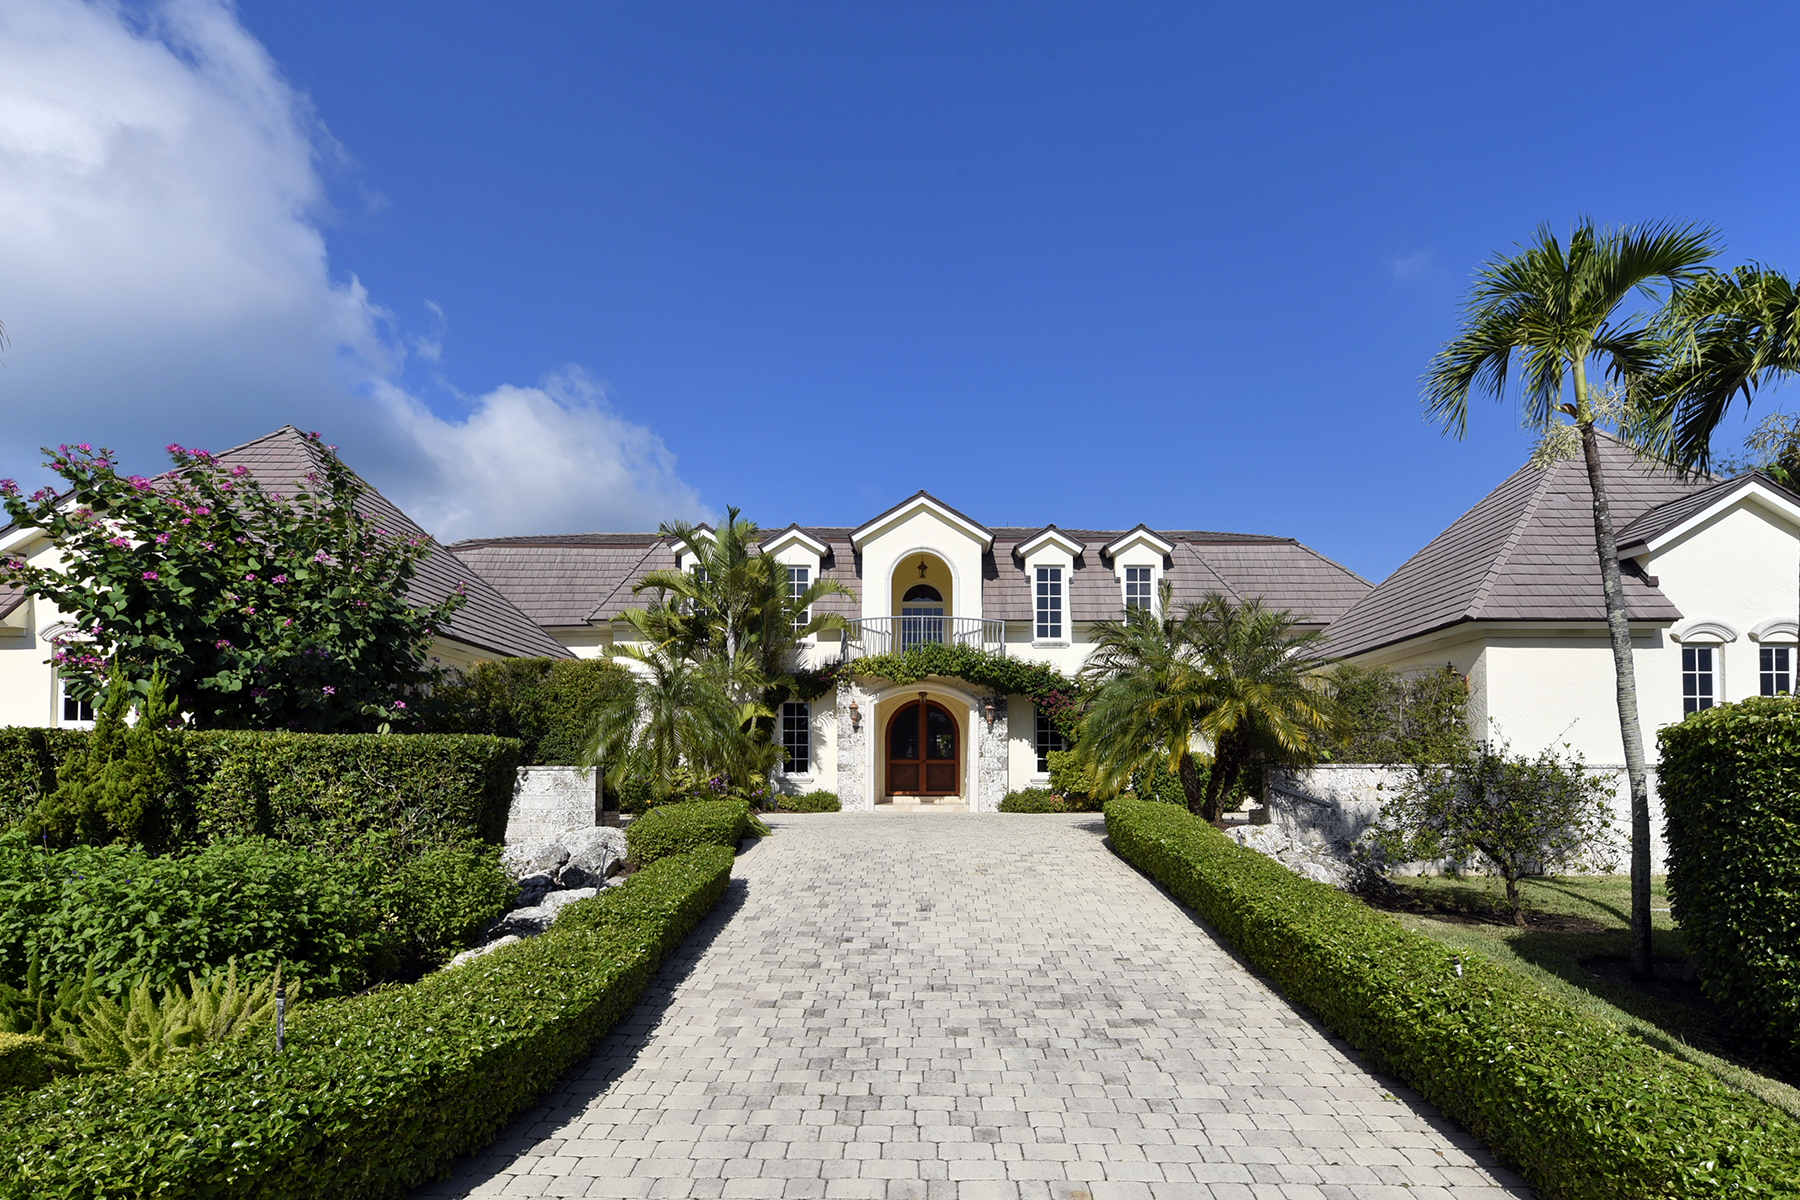 Casa Unifamiliar por un Venta en Expansive Waterfront Home at Ocean Reef 25 Bay Ridge Road Key Largo, Florida, 33037 Estados Unidos